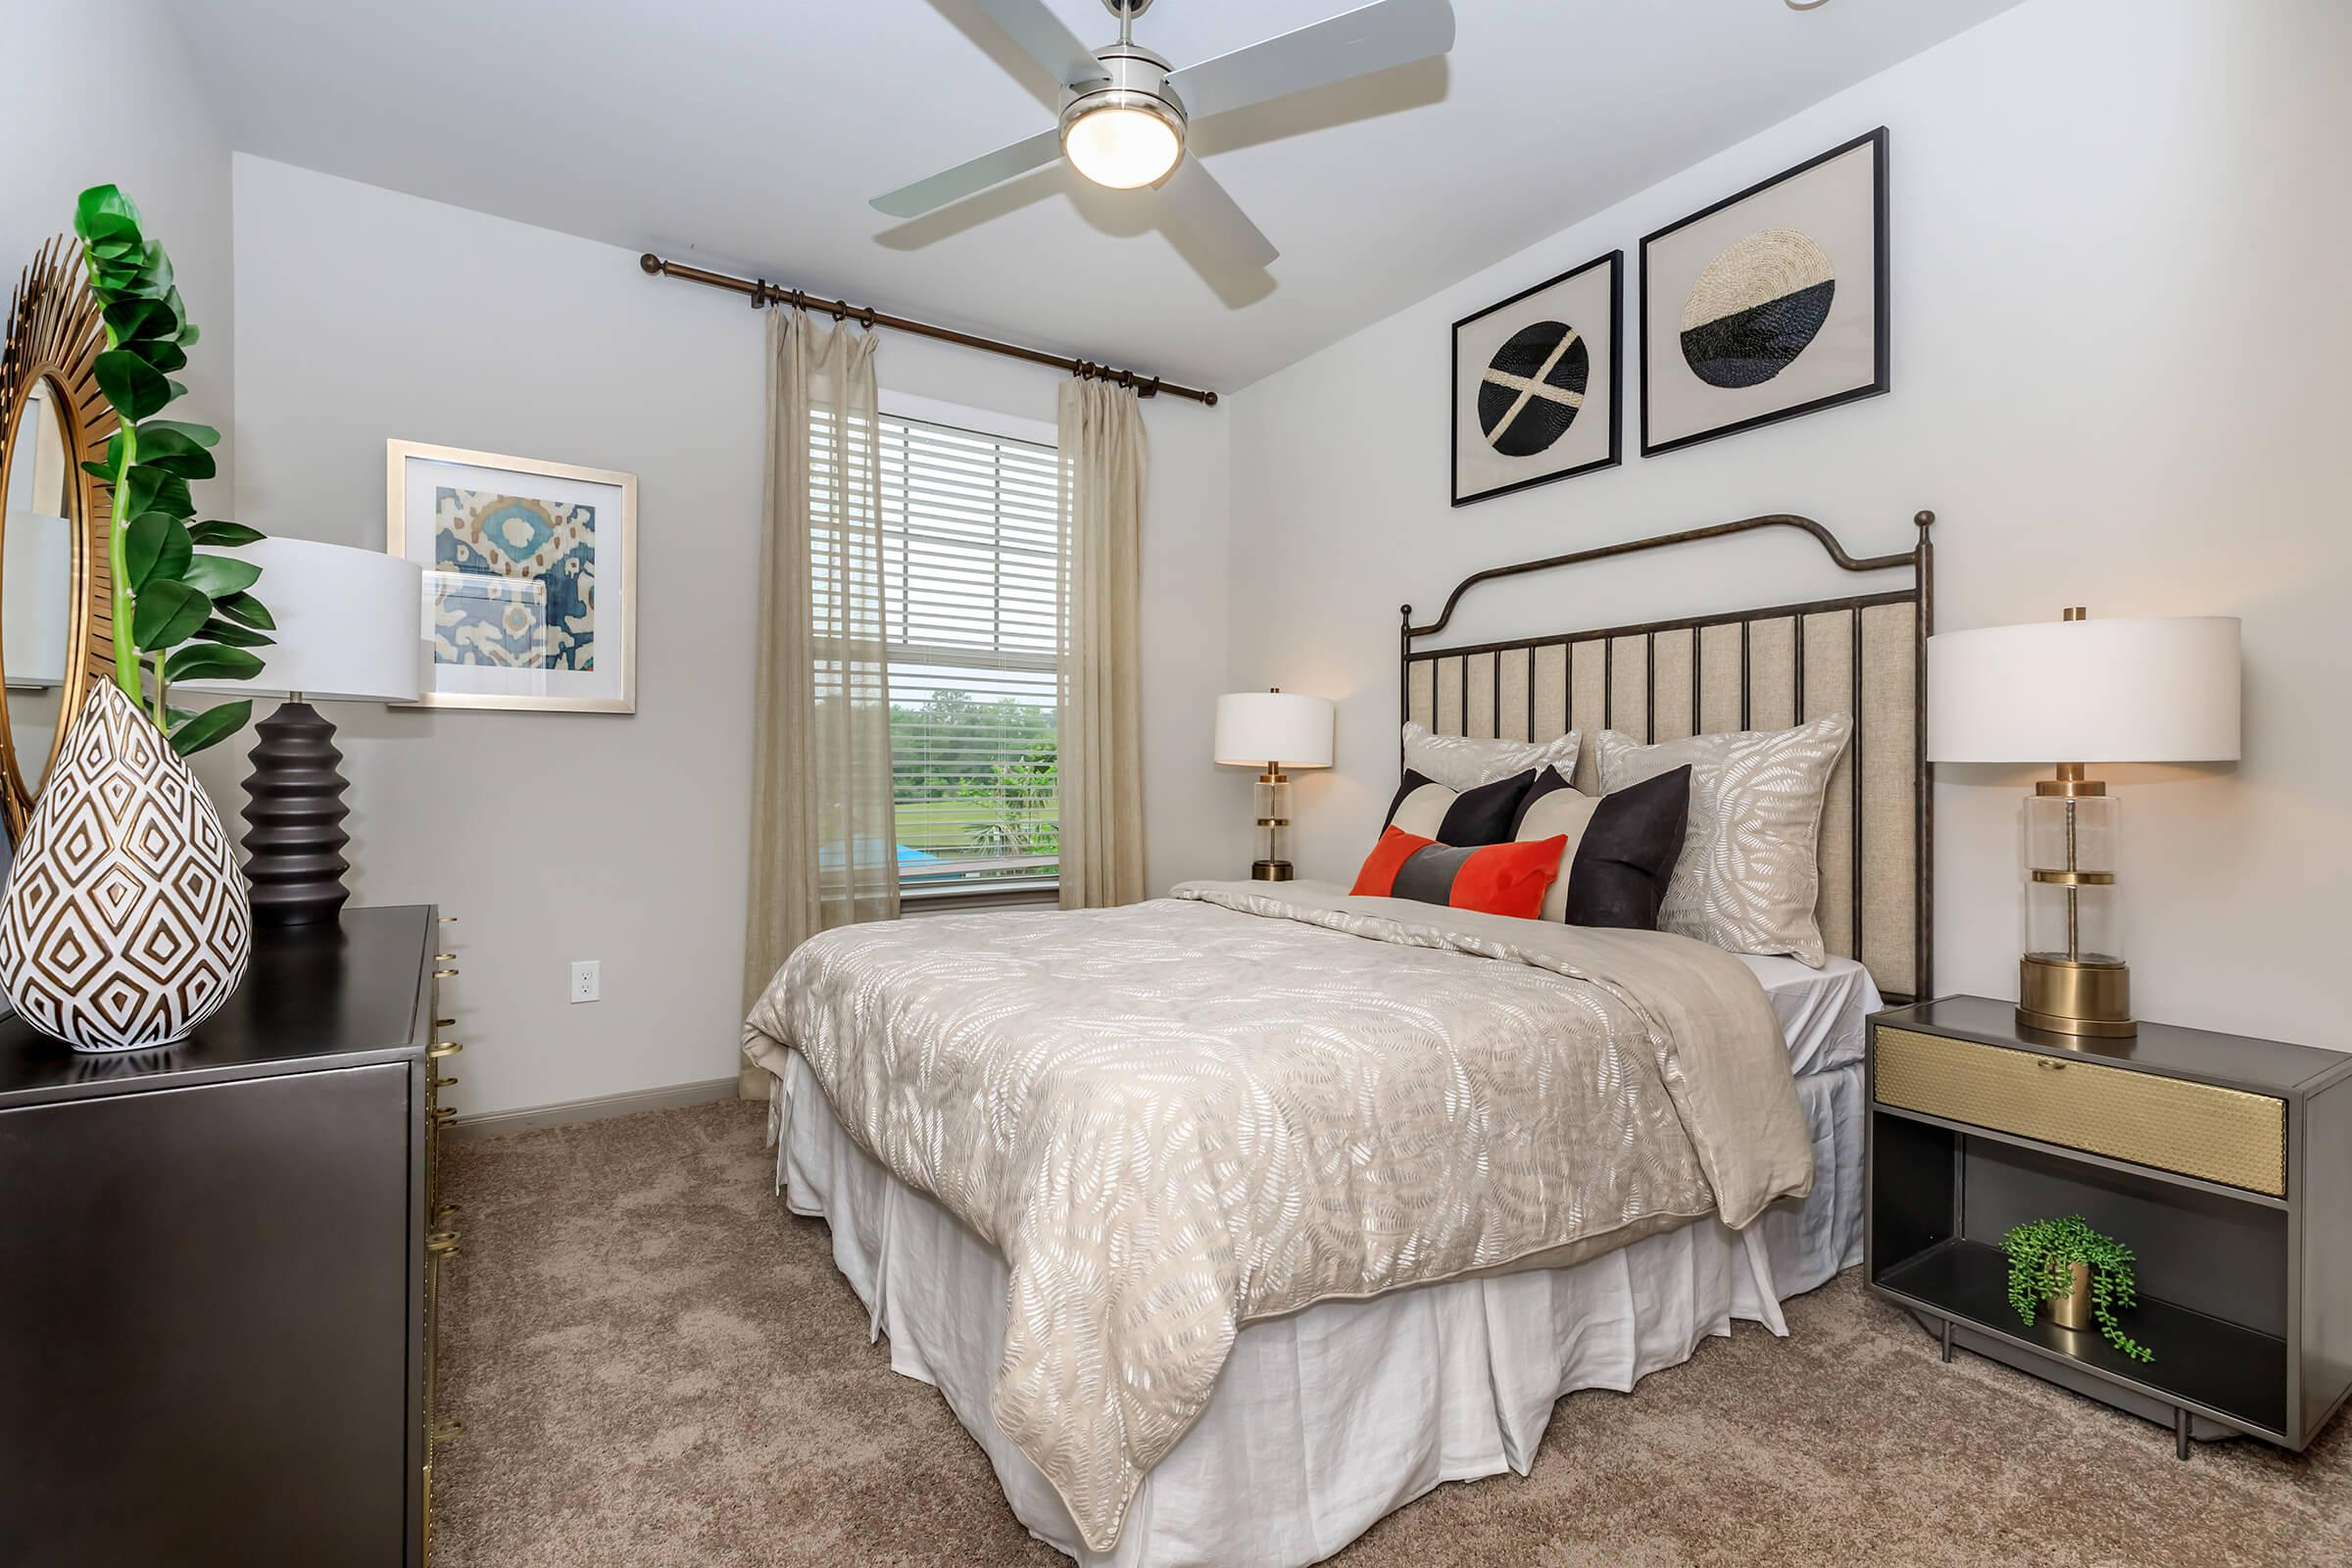 Serene bedroom staged with furniture and open window view of golf course.